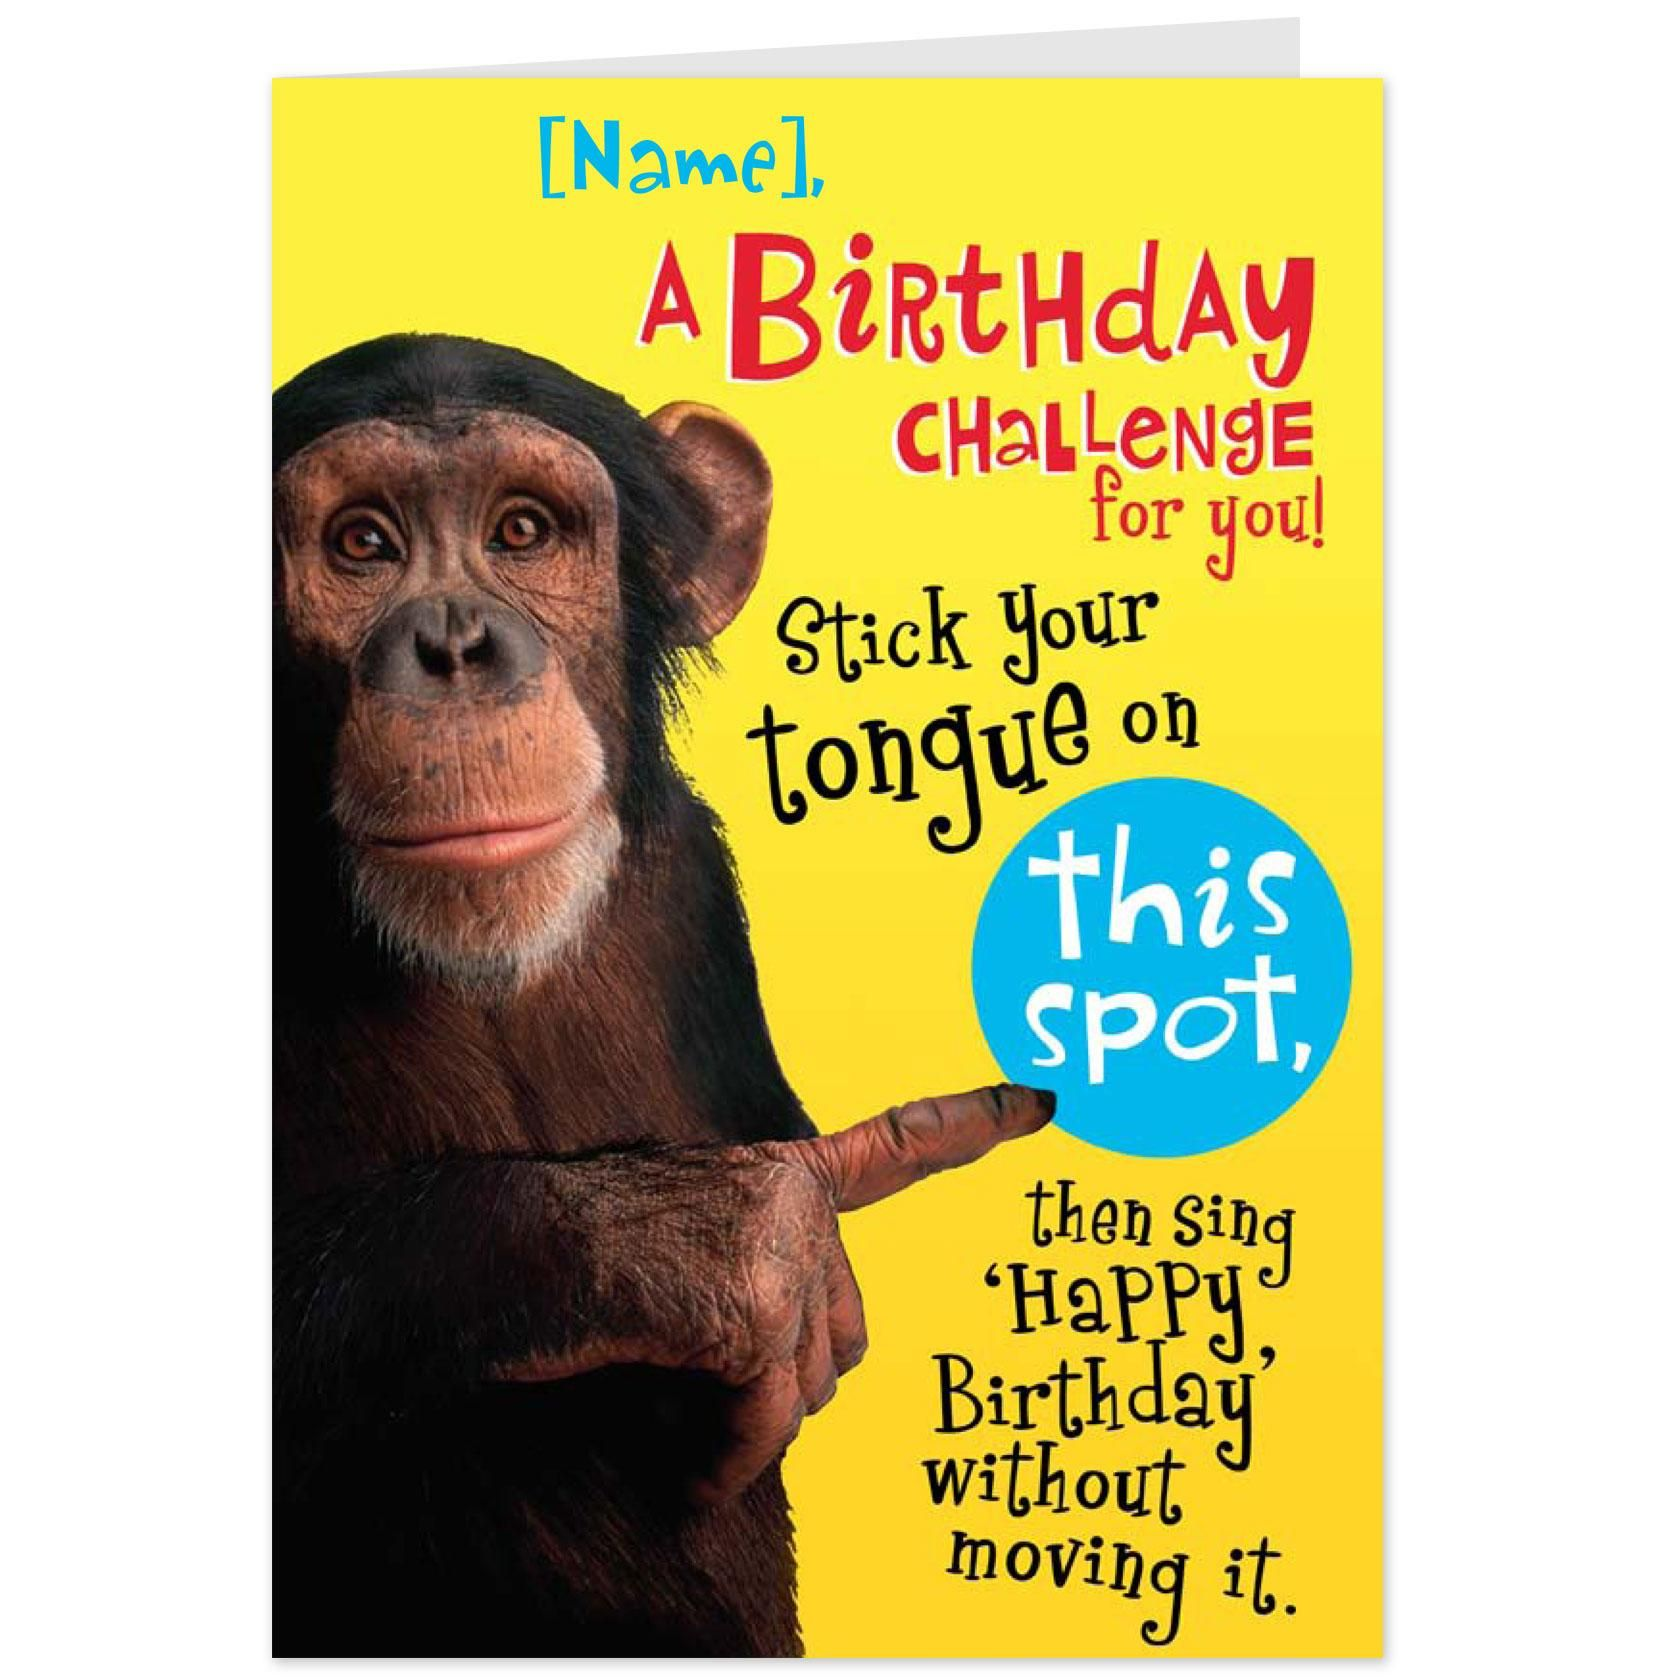 funny pictures for a birthday card ; cae19a92fa22fdeb6a7b1e25e9b529ac